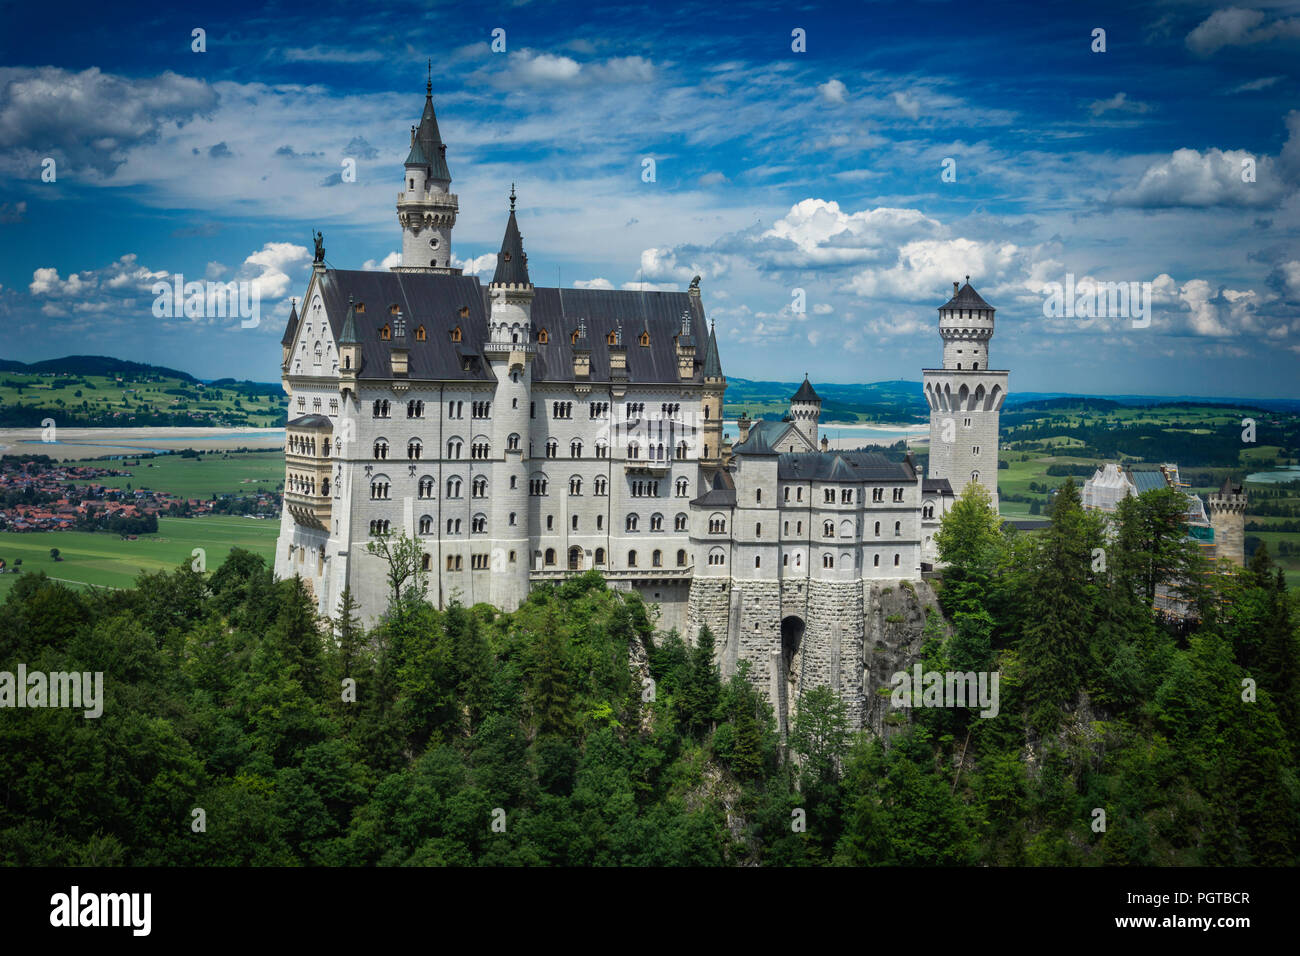 Neuschwanstein castle from Marienbrücke (Allgäu, Bavaria, Germany) - Stock Image